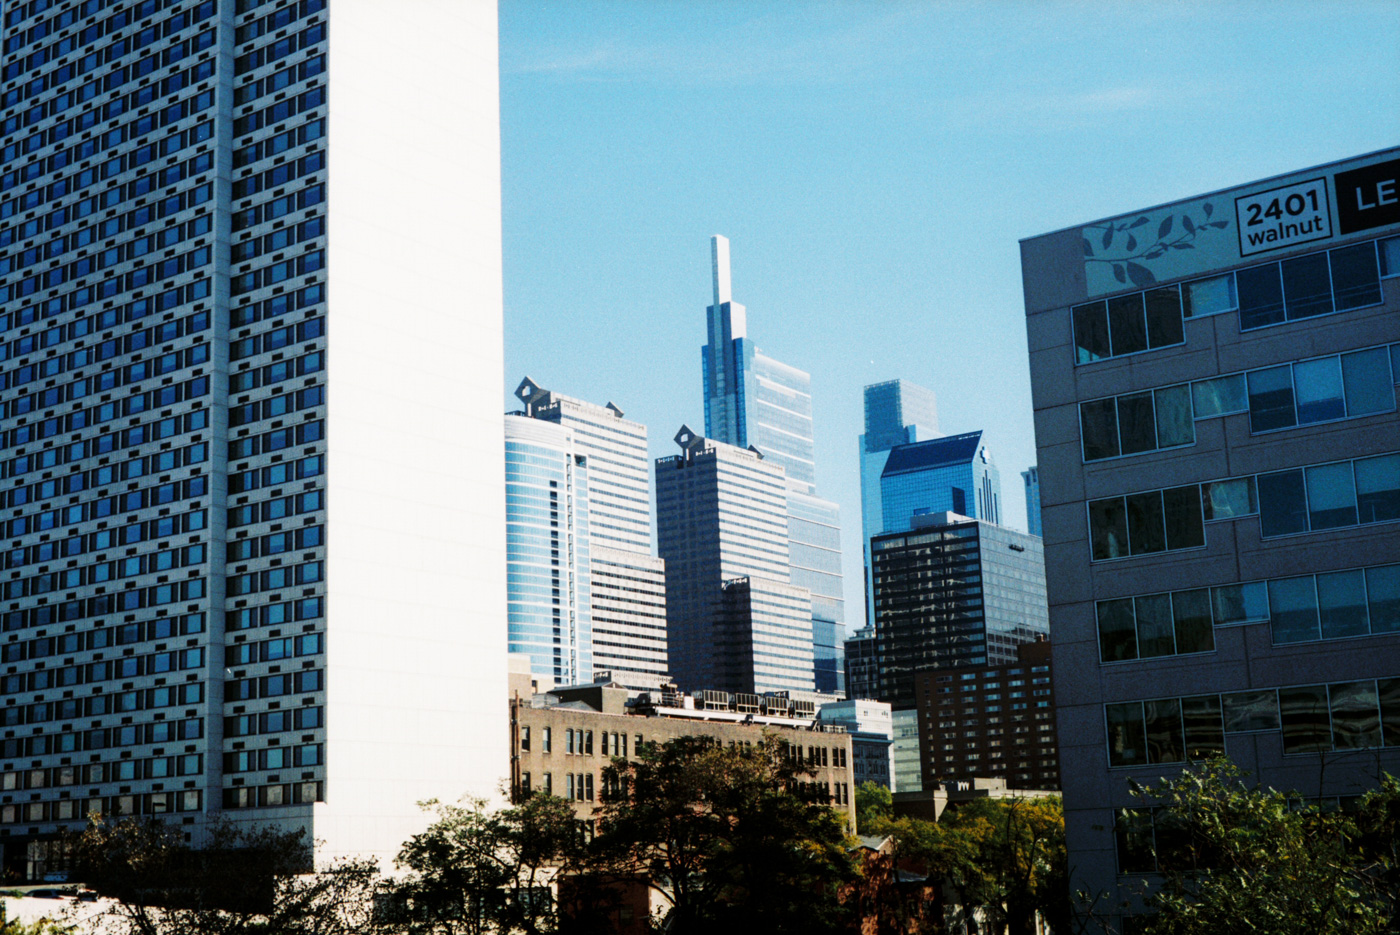 2400 Market Street and the Comcast Buildings